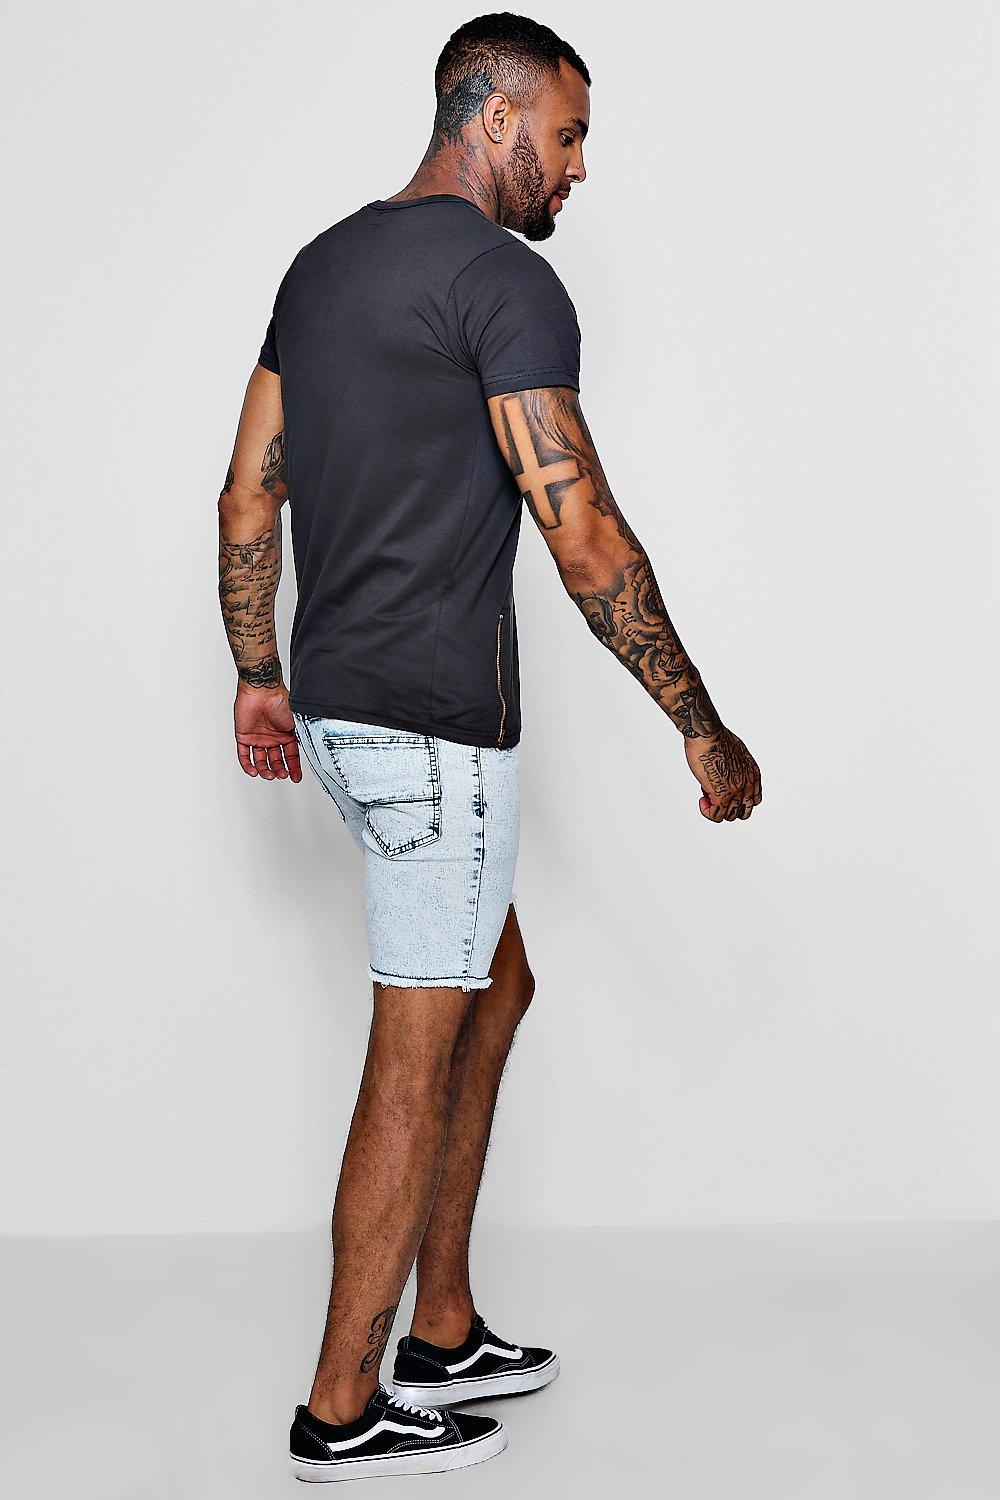 Shorts pale Fit Wash Raw Acid Hem blue Skinny Denim With PBI7faqOw